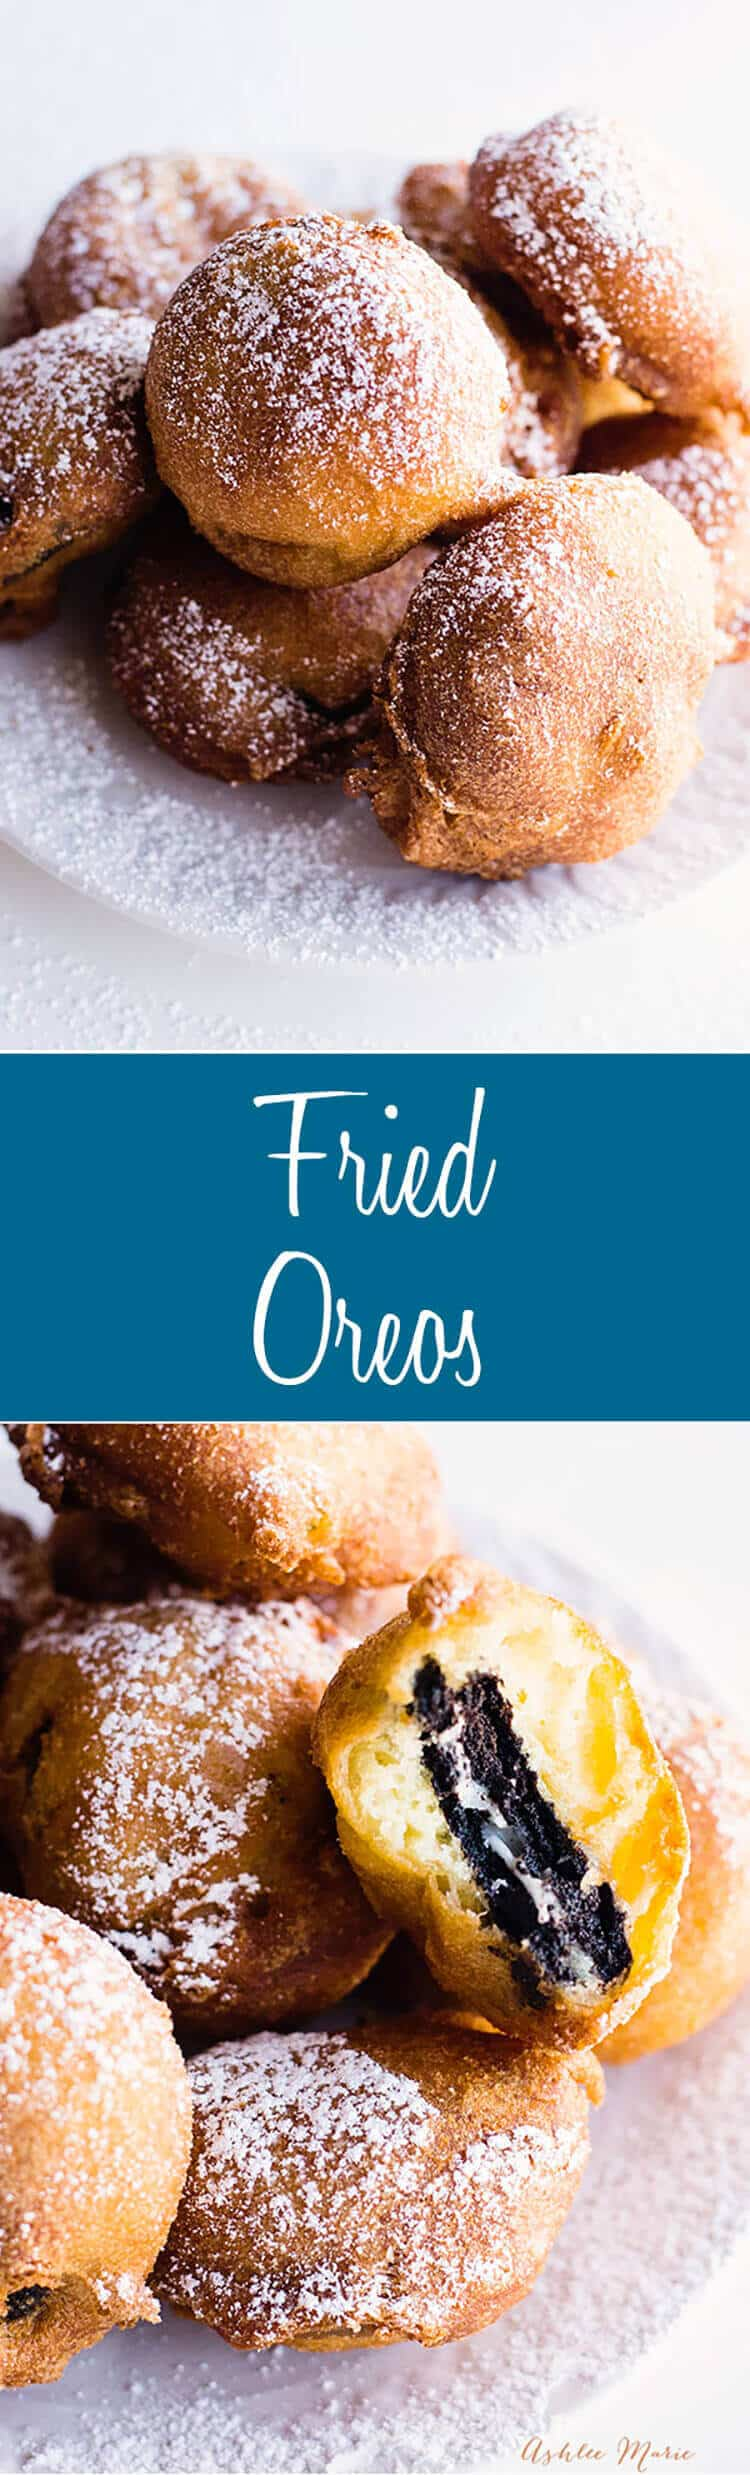 dip your favorite flavor of oreo into this sweet batter and fry it for an AMAZING treat - recipe and video tutorial